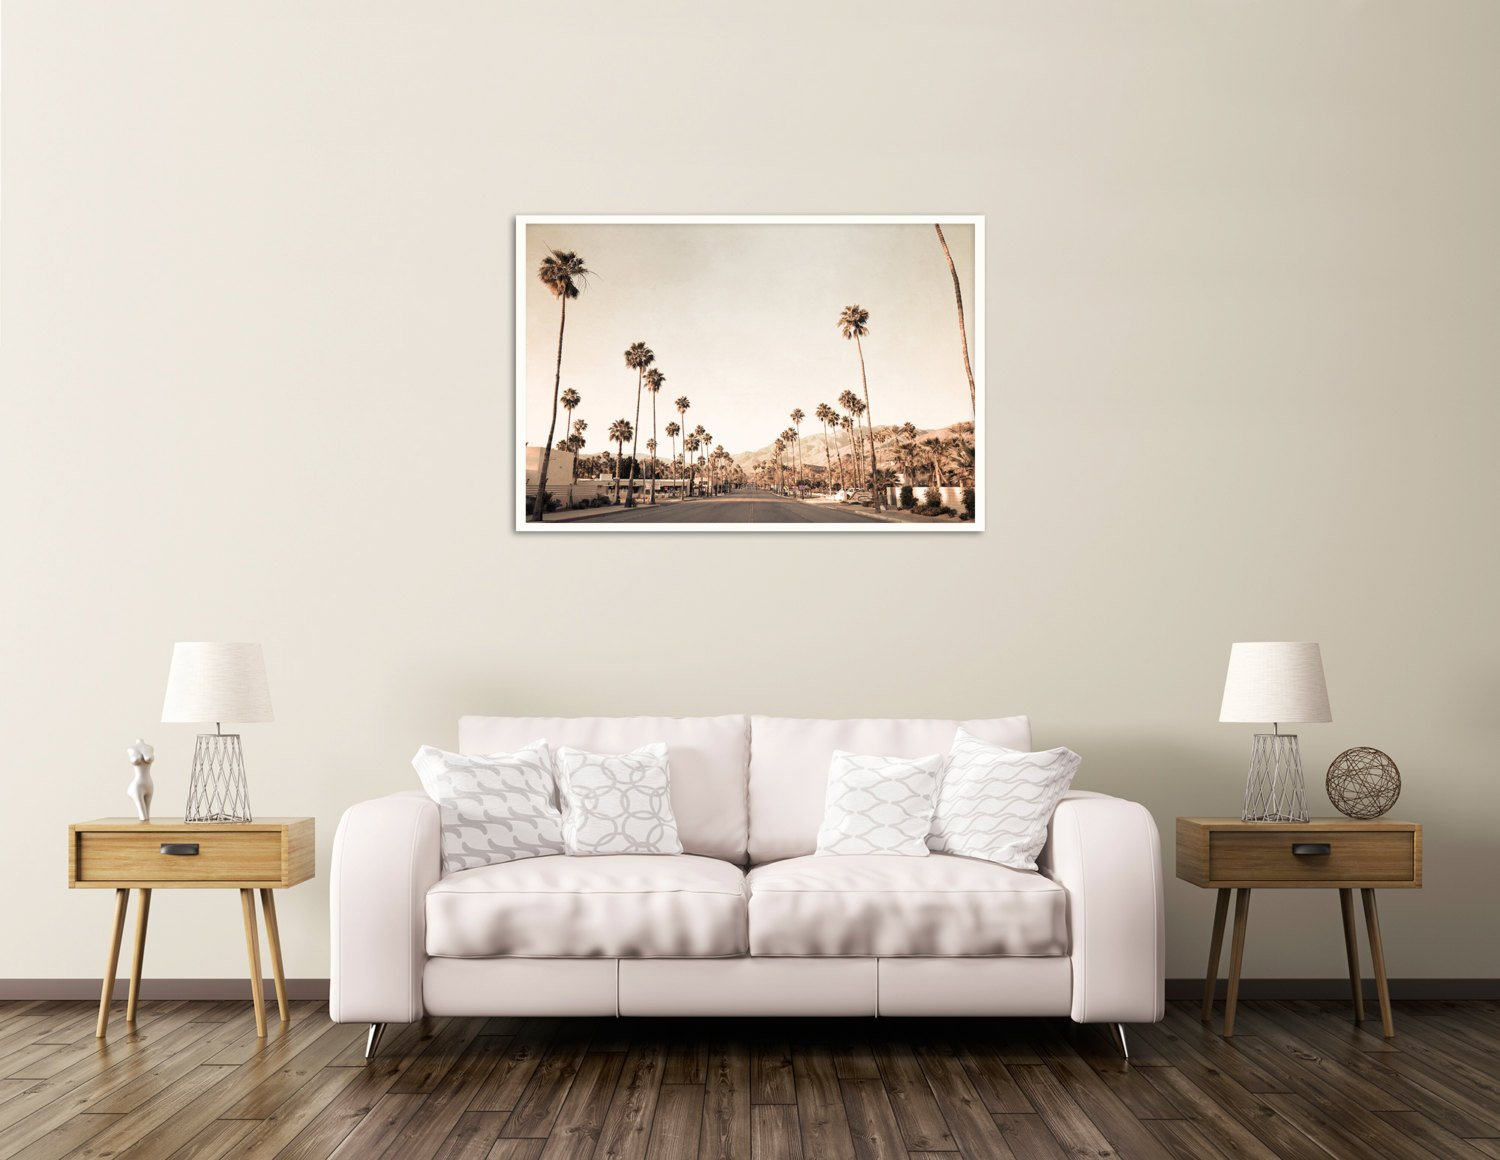 Wall decals choose an option 8x12 in 16x24 in 24x36 in - Wall Decals Choose An Option 8x12 In 16x24 In 24x36 In